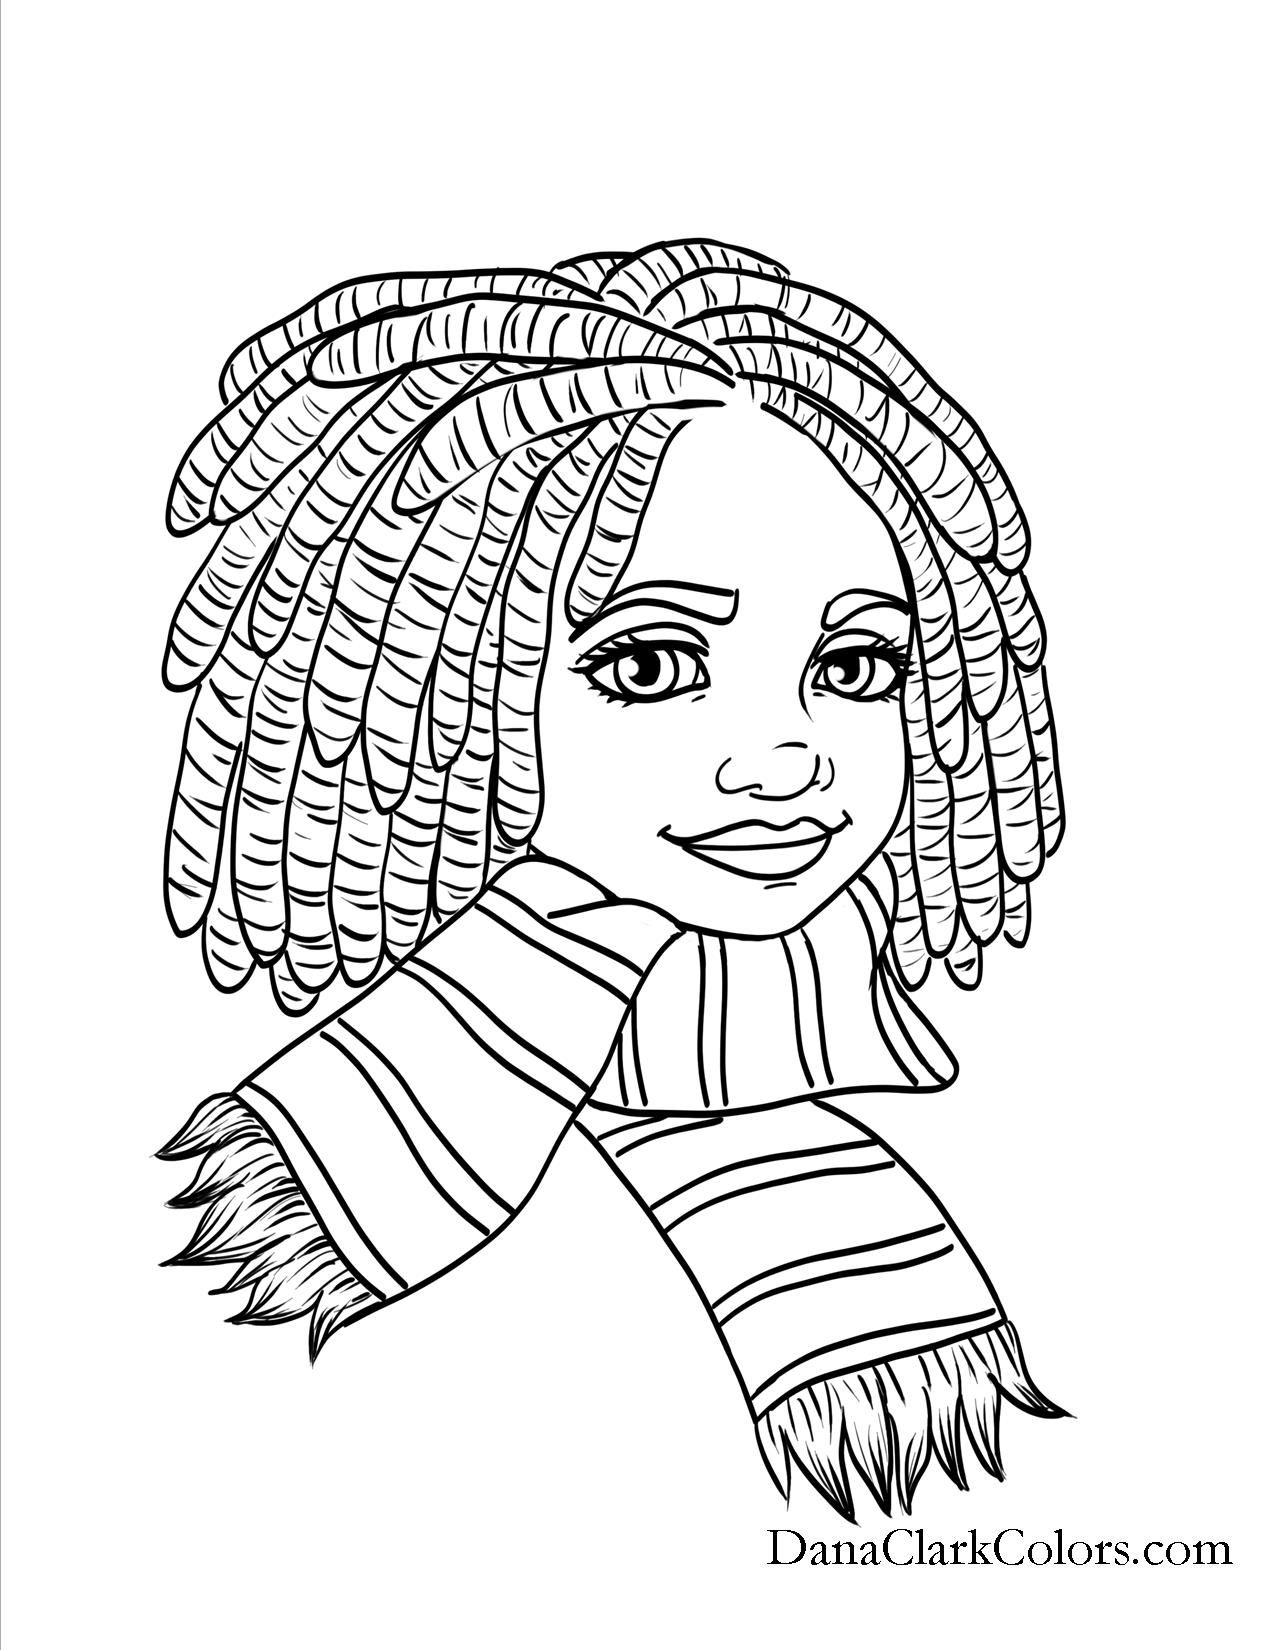 Coloring pages for underground railroad - Black Kids Coloring Page Africanamericancoloringpage